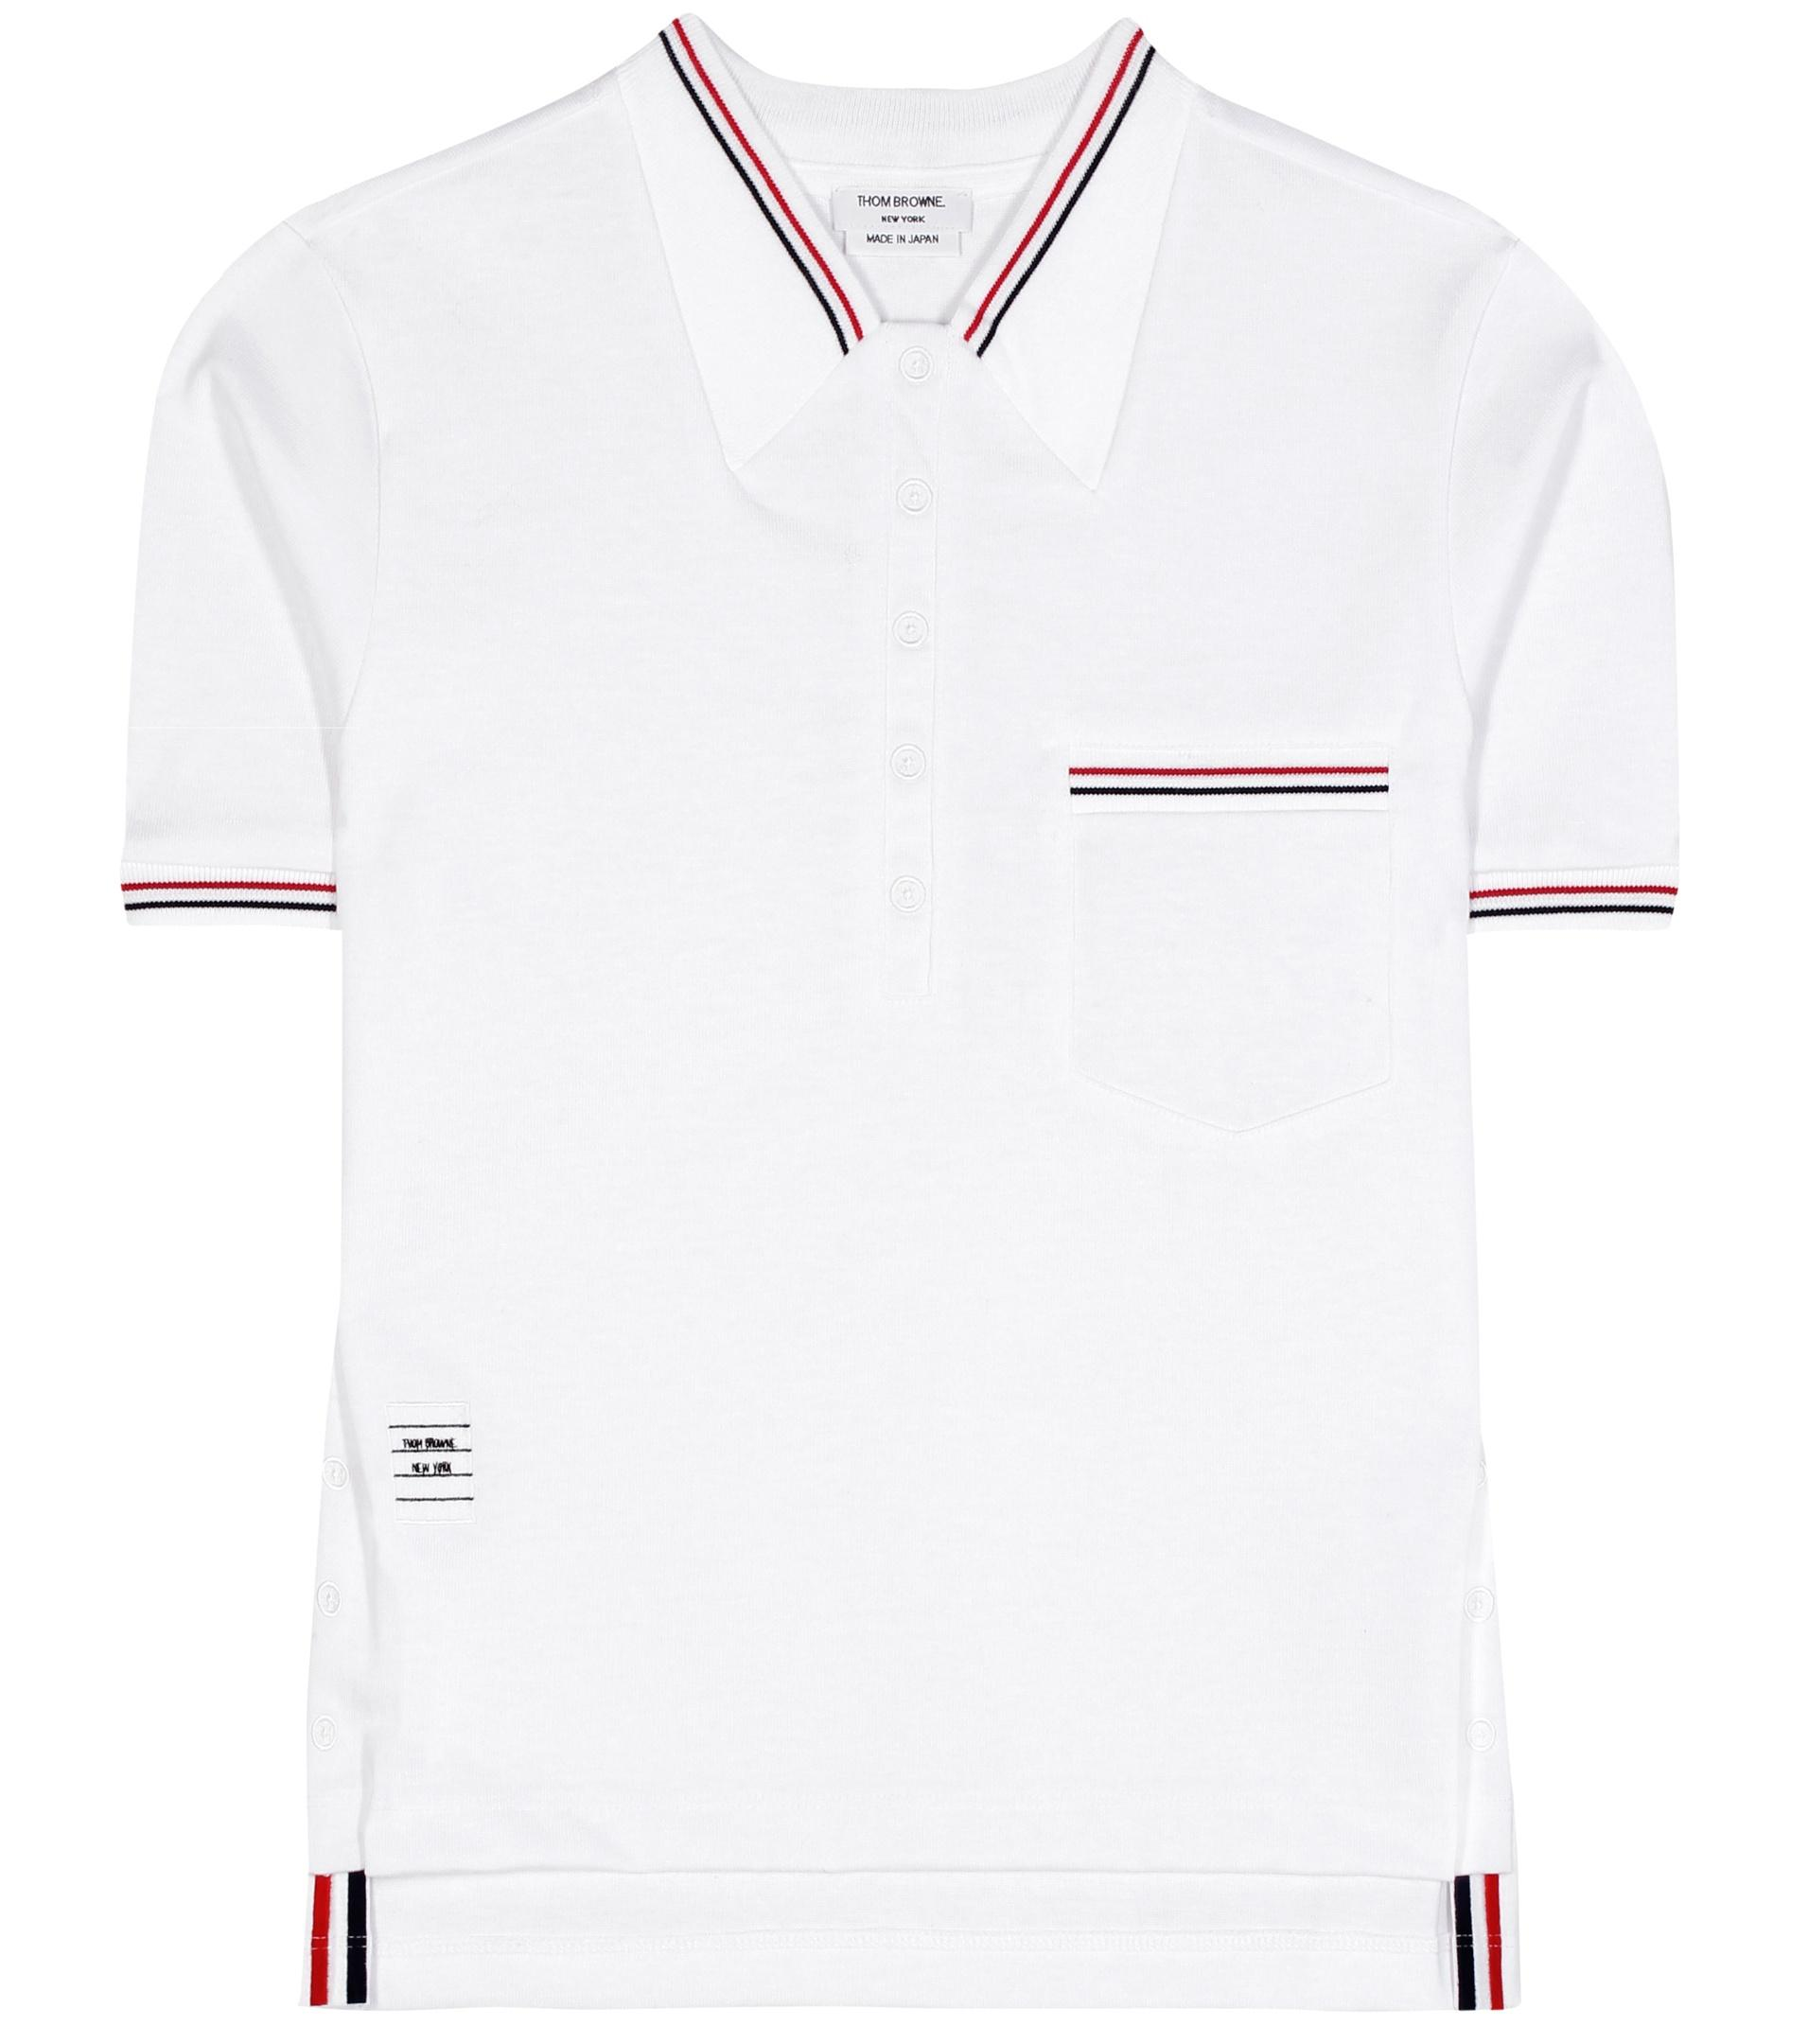 Lyst thom browne cotton t shirt in white for Thom browne t shirt